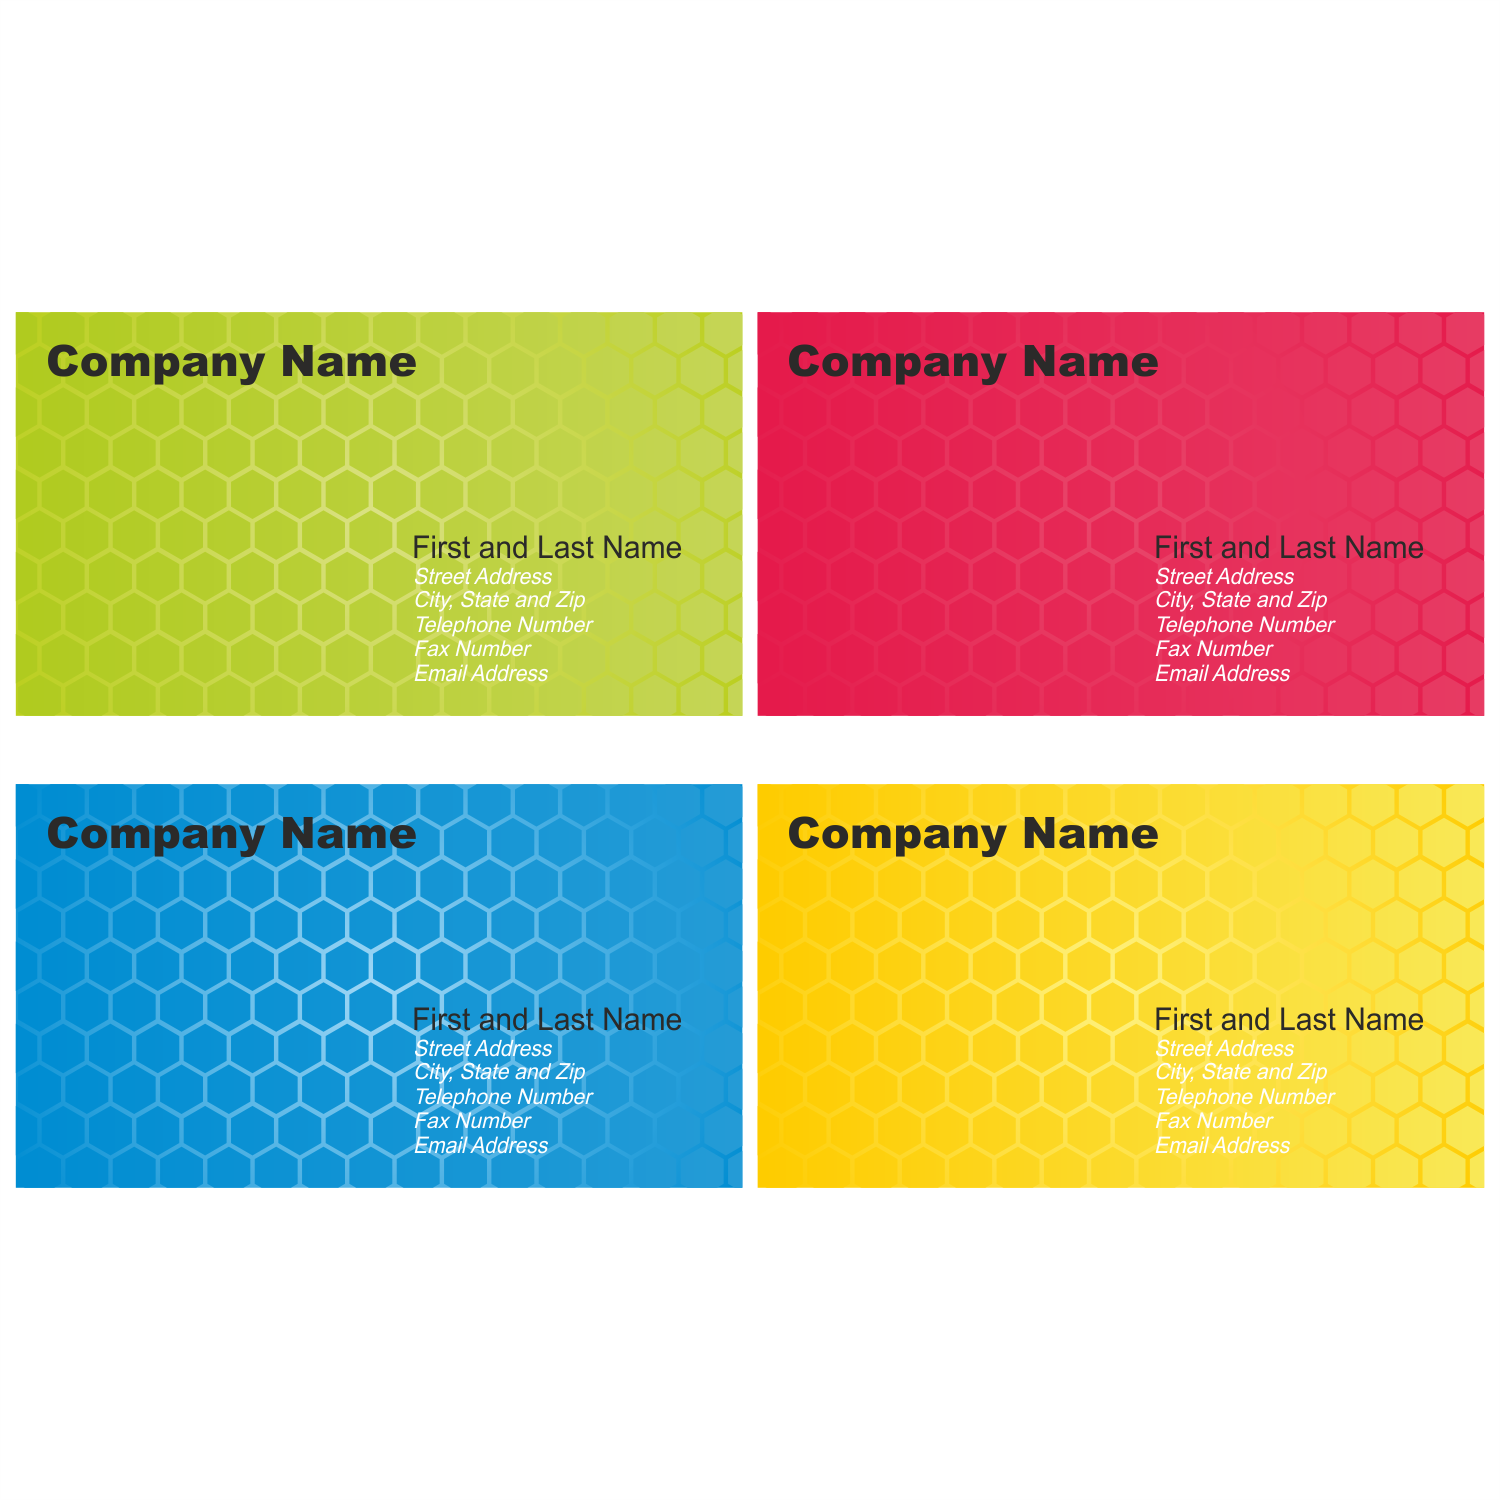 Free avery business card templates business card sample for Business cards free templates